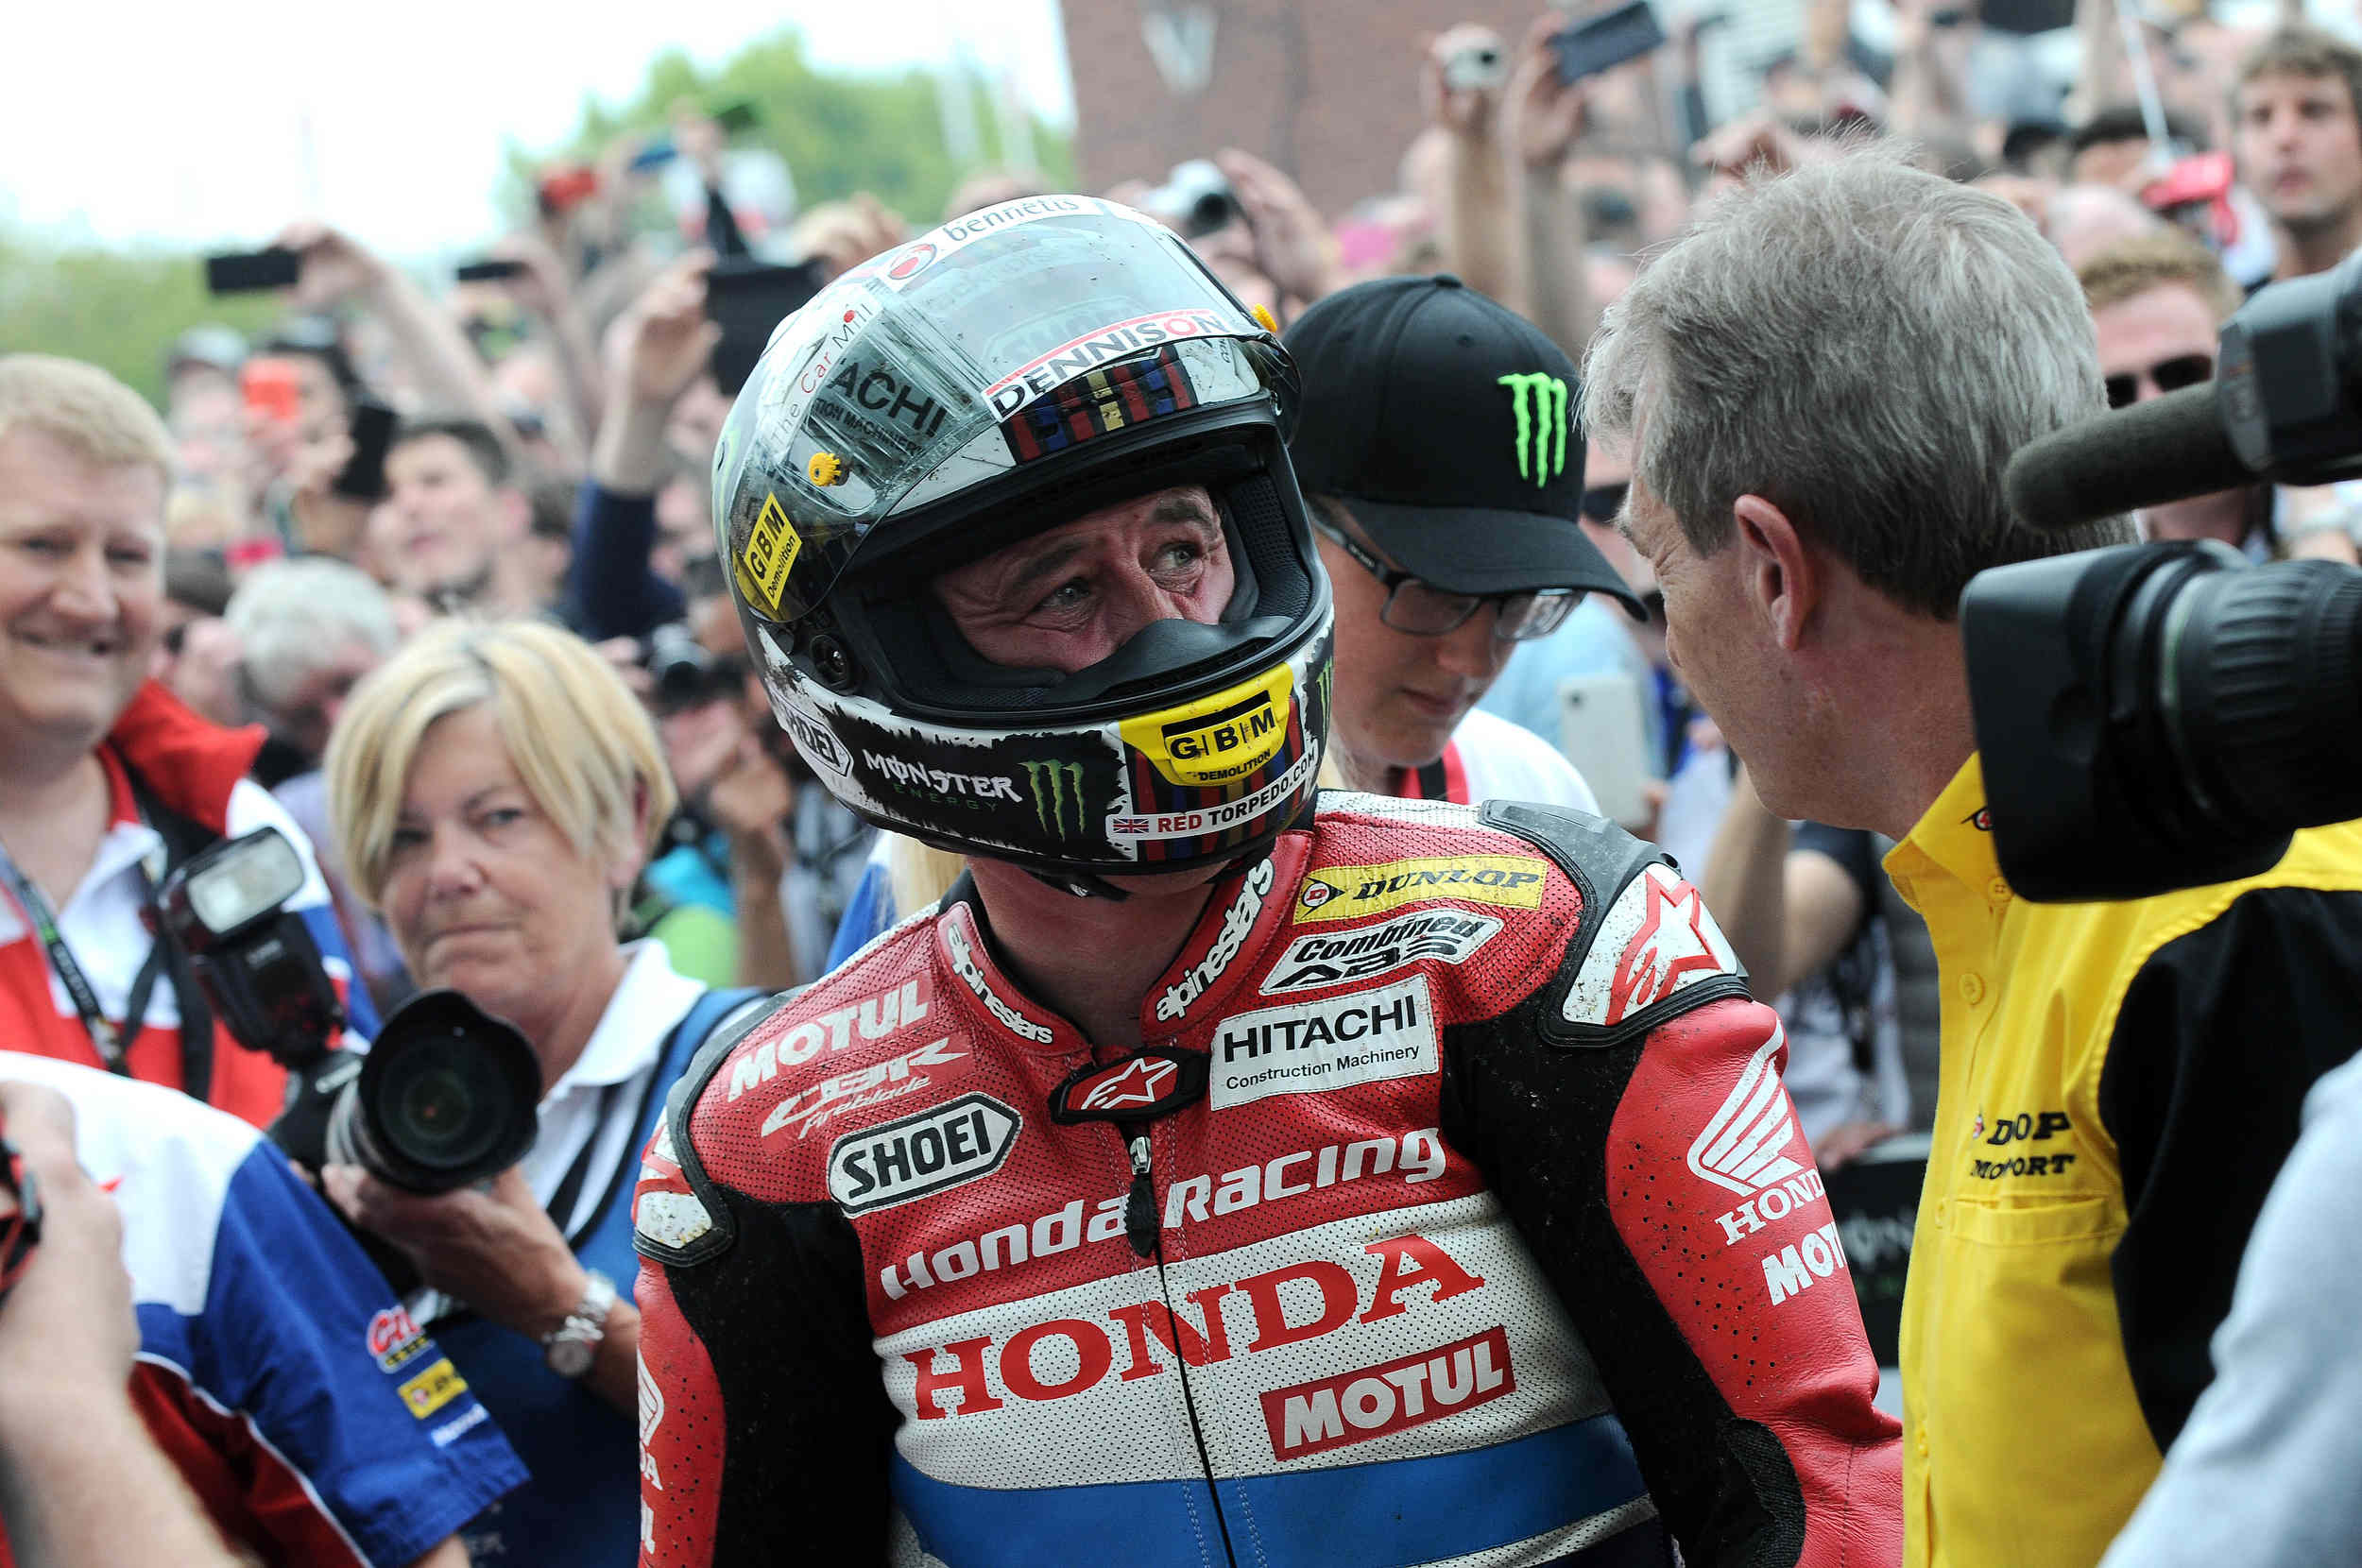 Senior TT 2015 winner John McGuinness